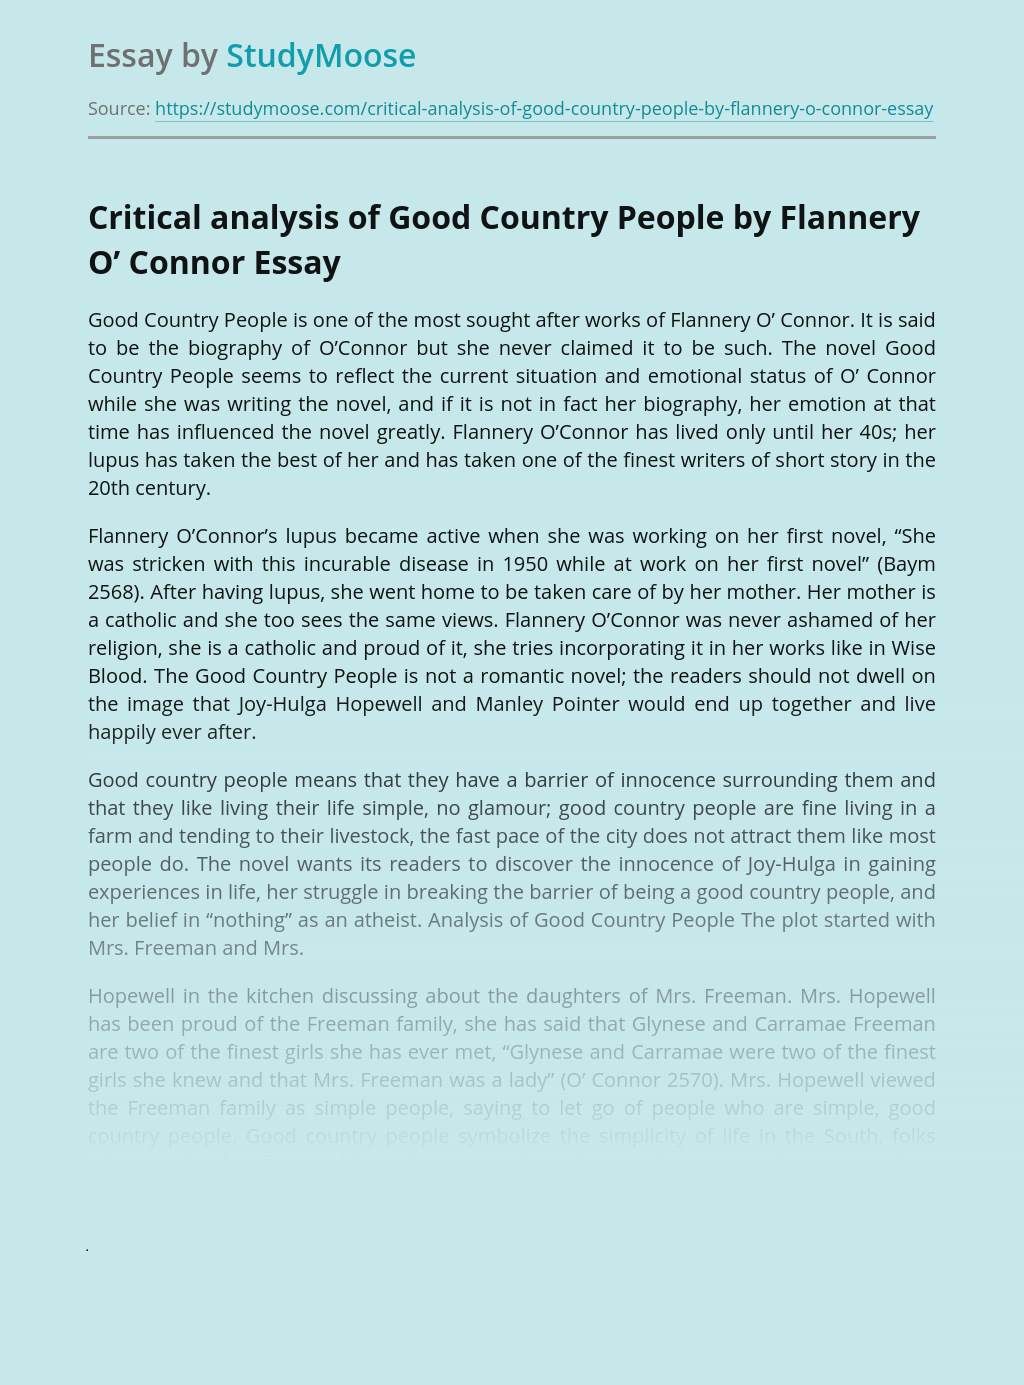 Critical analysis of Good Country People by Flannery O' Connor